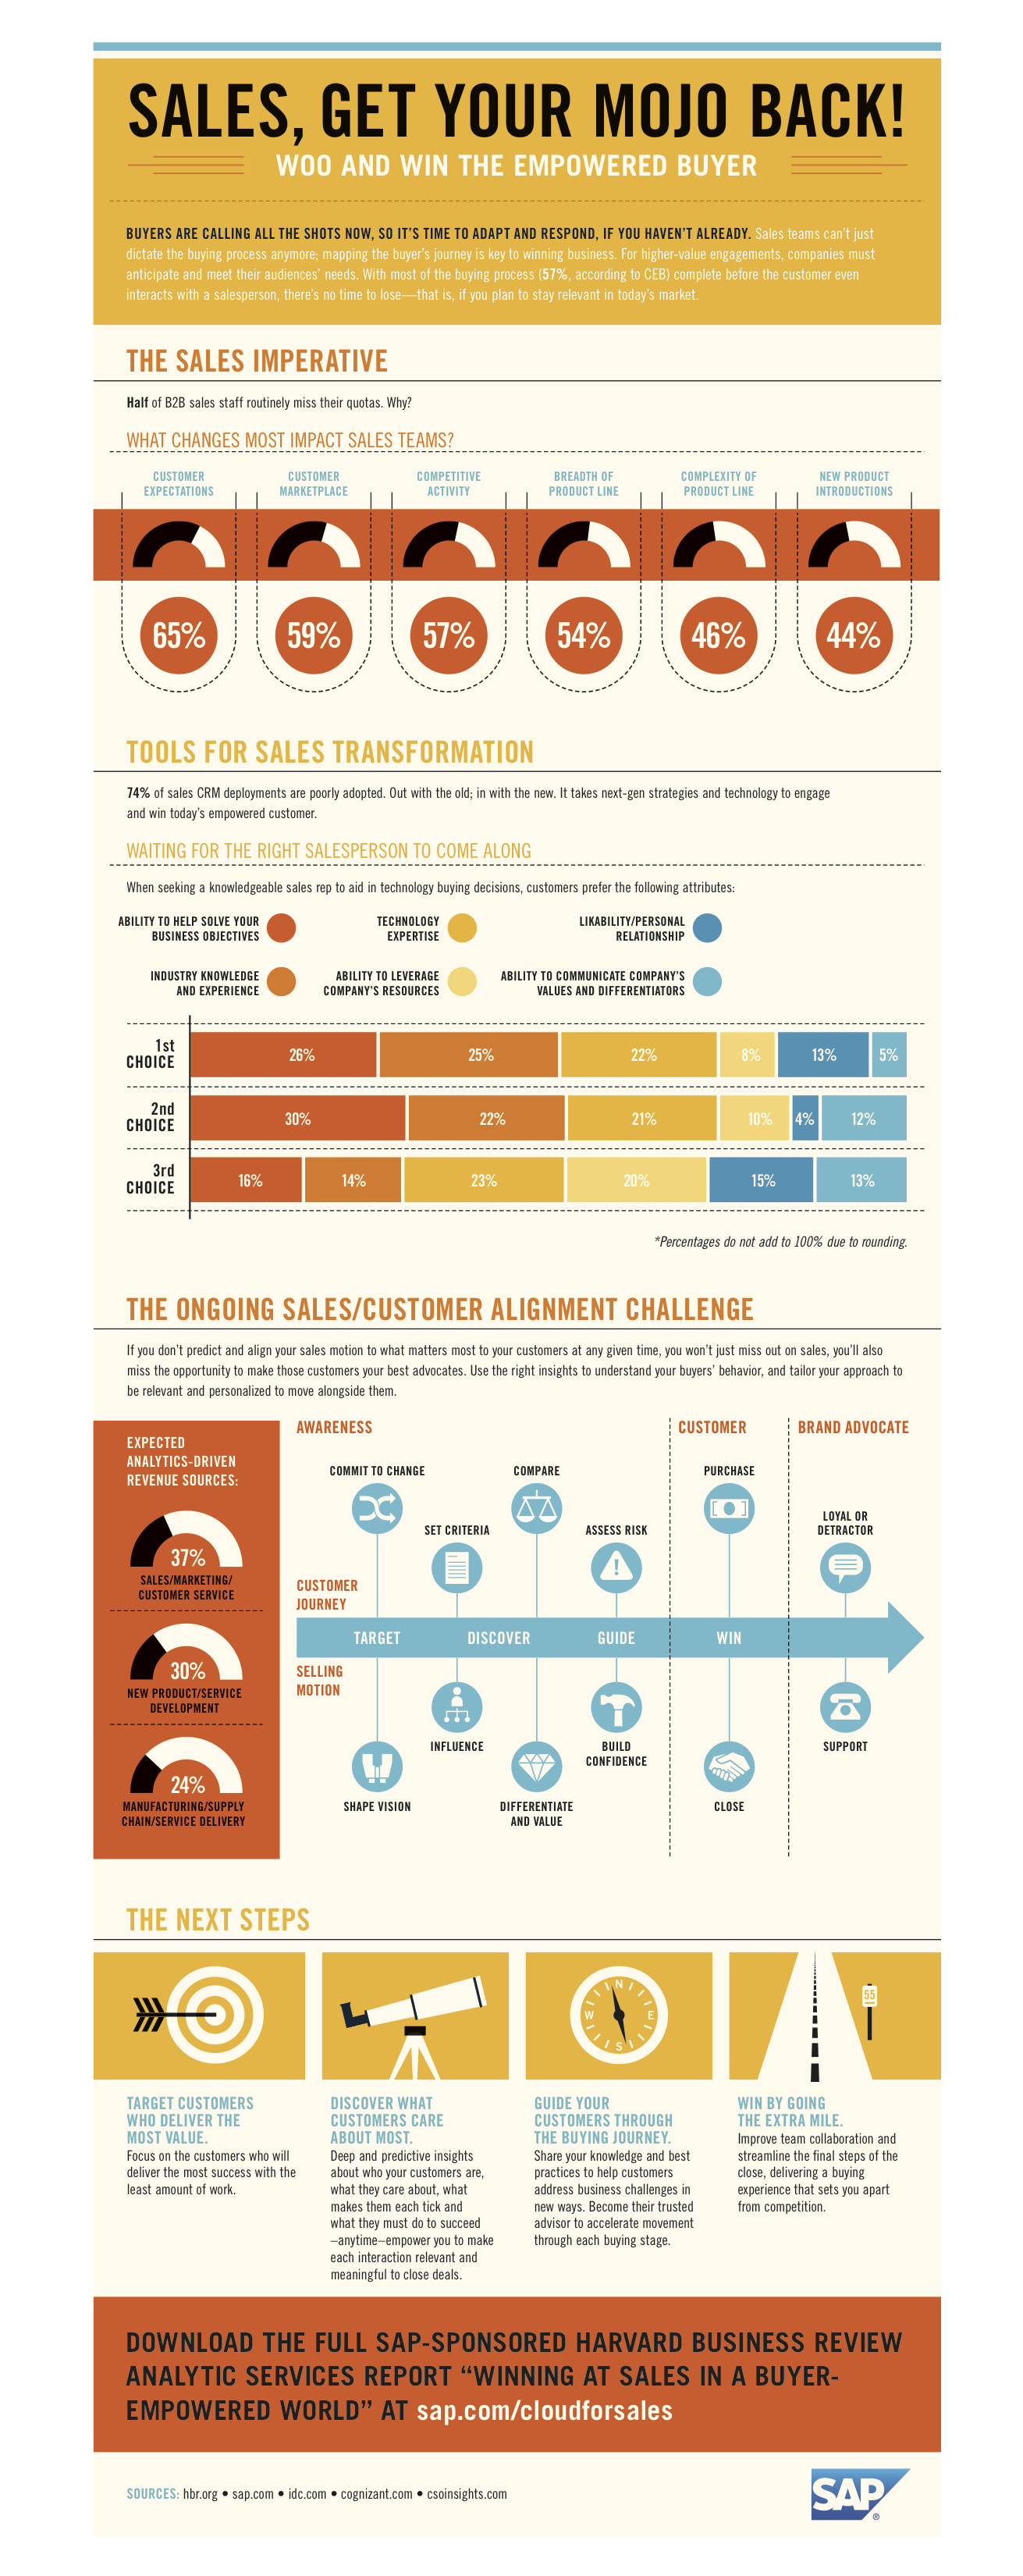 5 informative infographics to guide your sales strategy